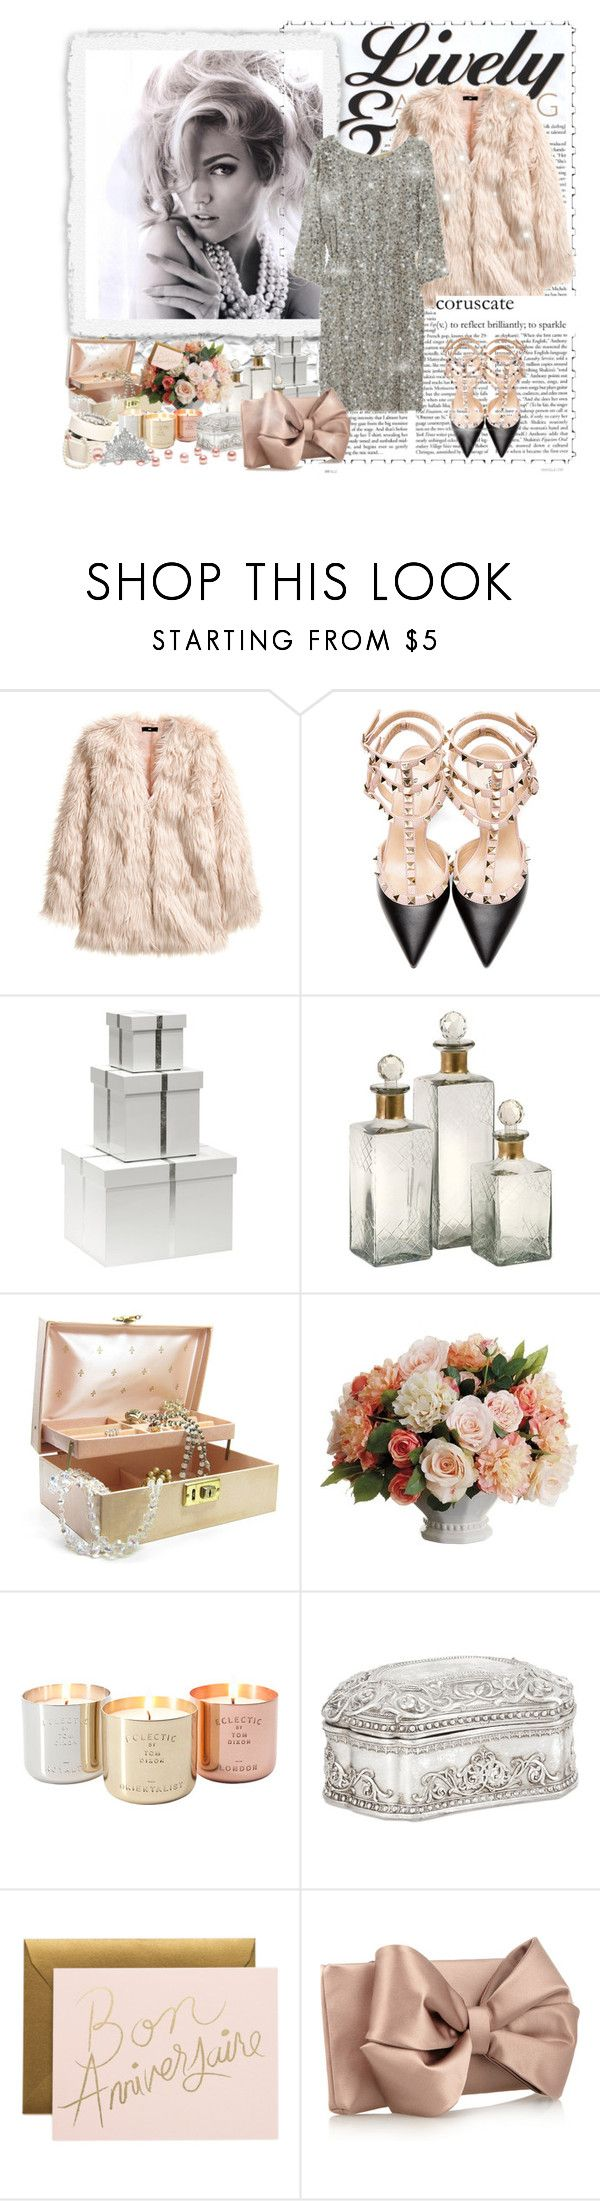 """Never too many never too much"" by nina-zet ❤ liked on Polyvore featuring H&M, Alice + Olivia, Valentino, Bungalow 5, Allstate Floral, Tom Dixon, Zara Home and Topshop"